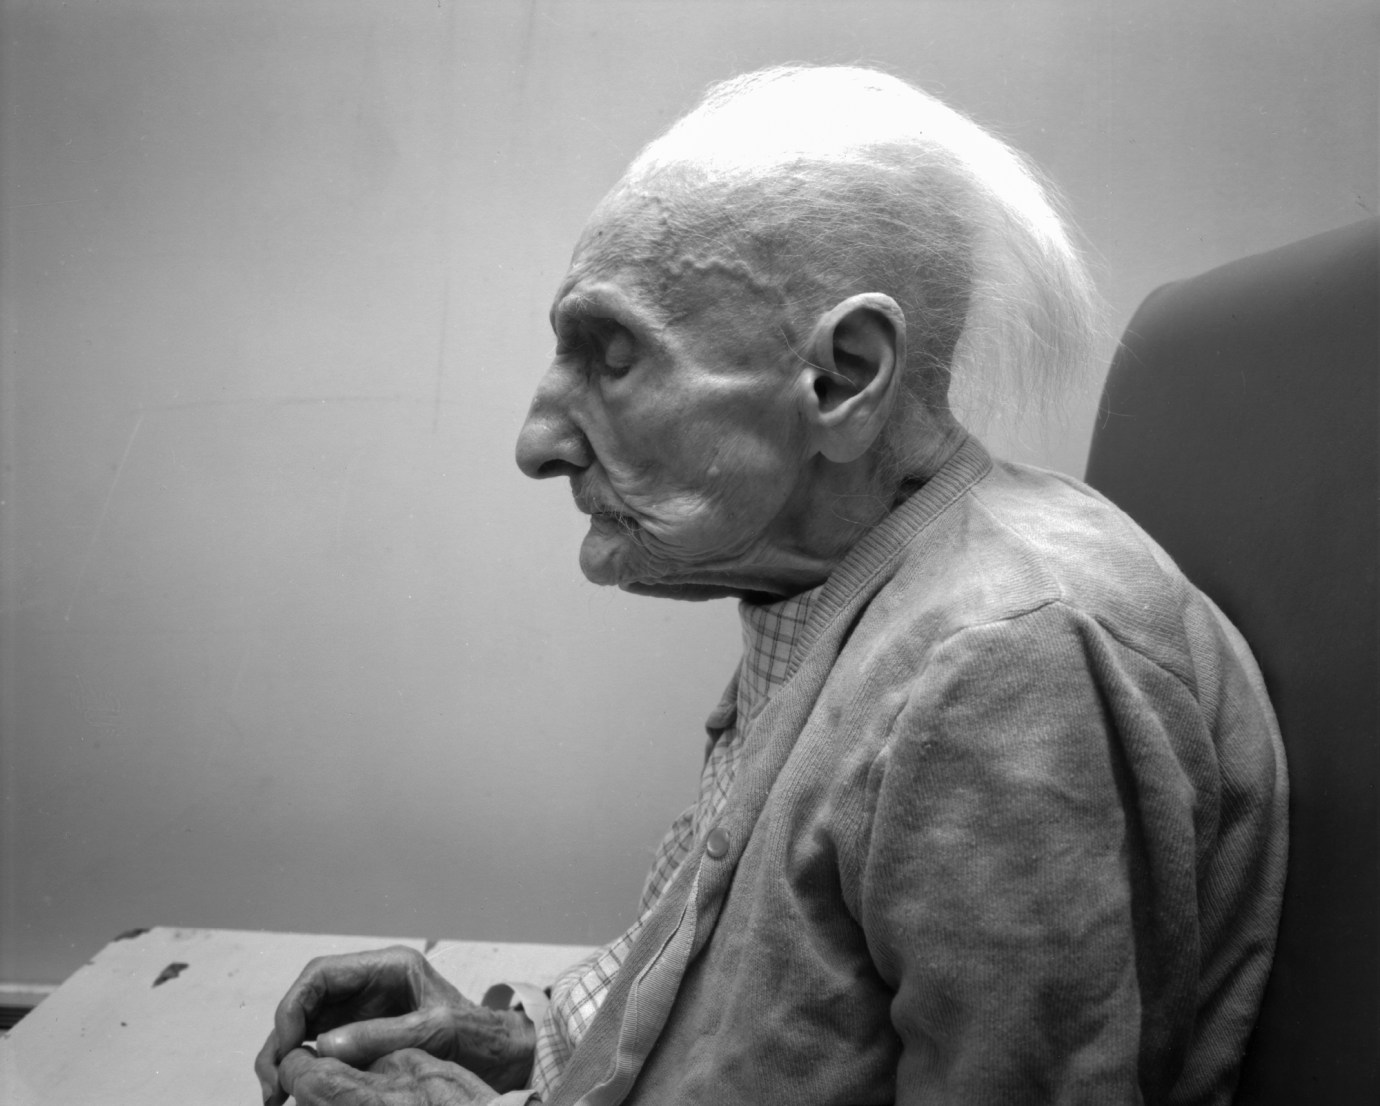 Black and white photograph of the profile of an elderly person seated with their eyes closed